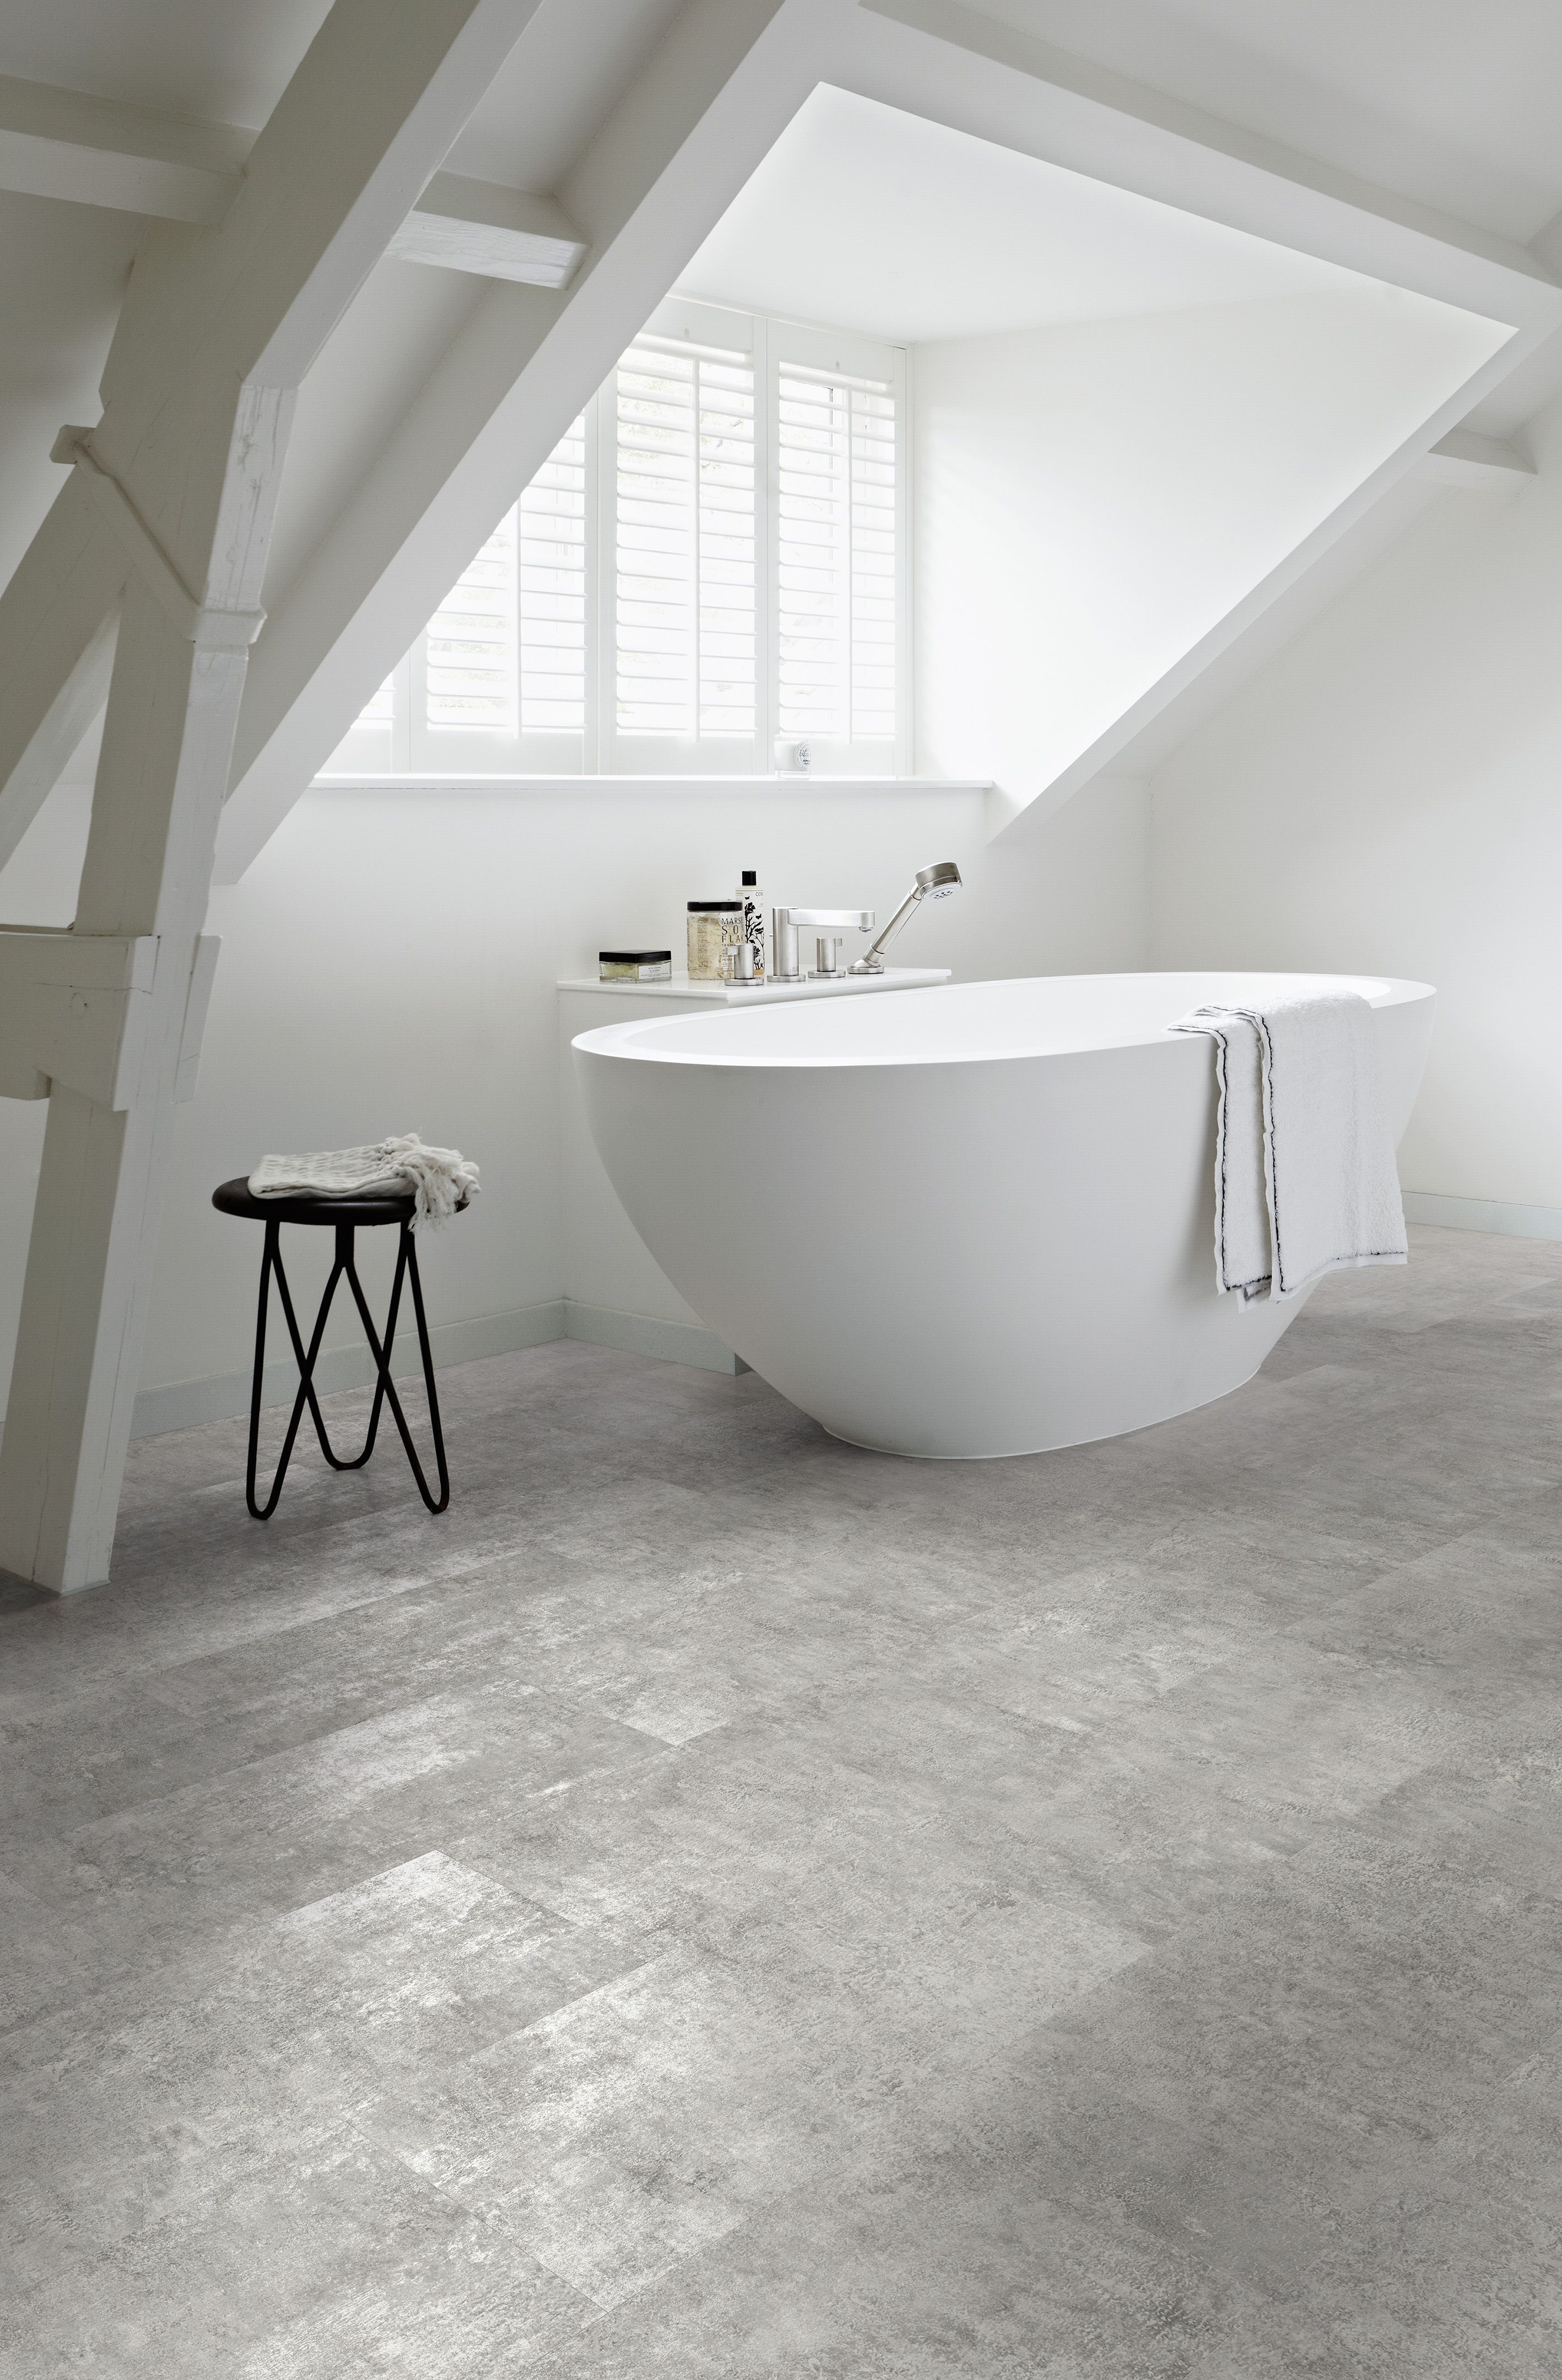 Grey flagstone bathroom with a lovely feature window camaro loc camaro loc pu a collection of high design luxury interlocking vinyl flooring tiles ideal for all home interiors dailygadgetfo Choice Image